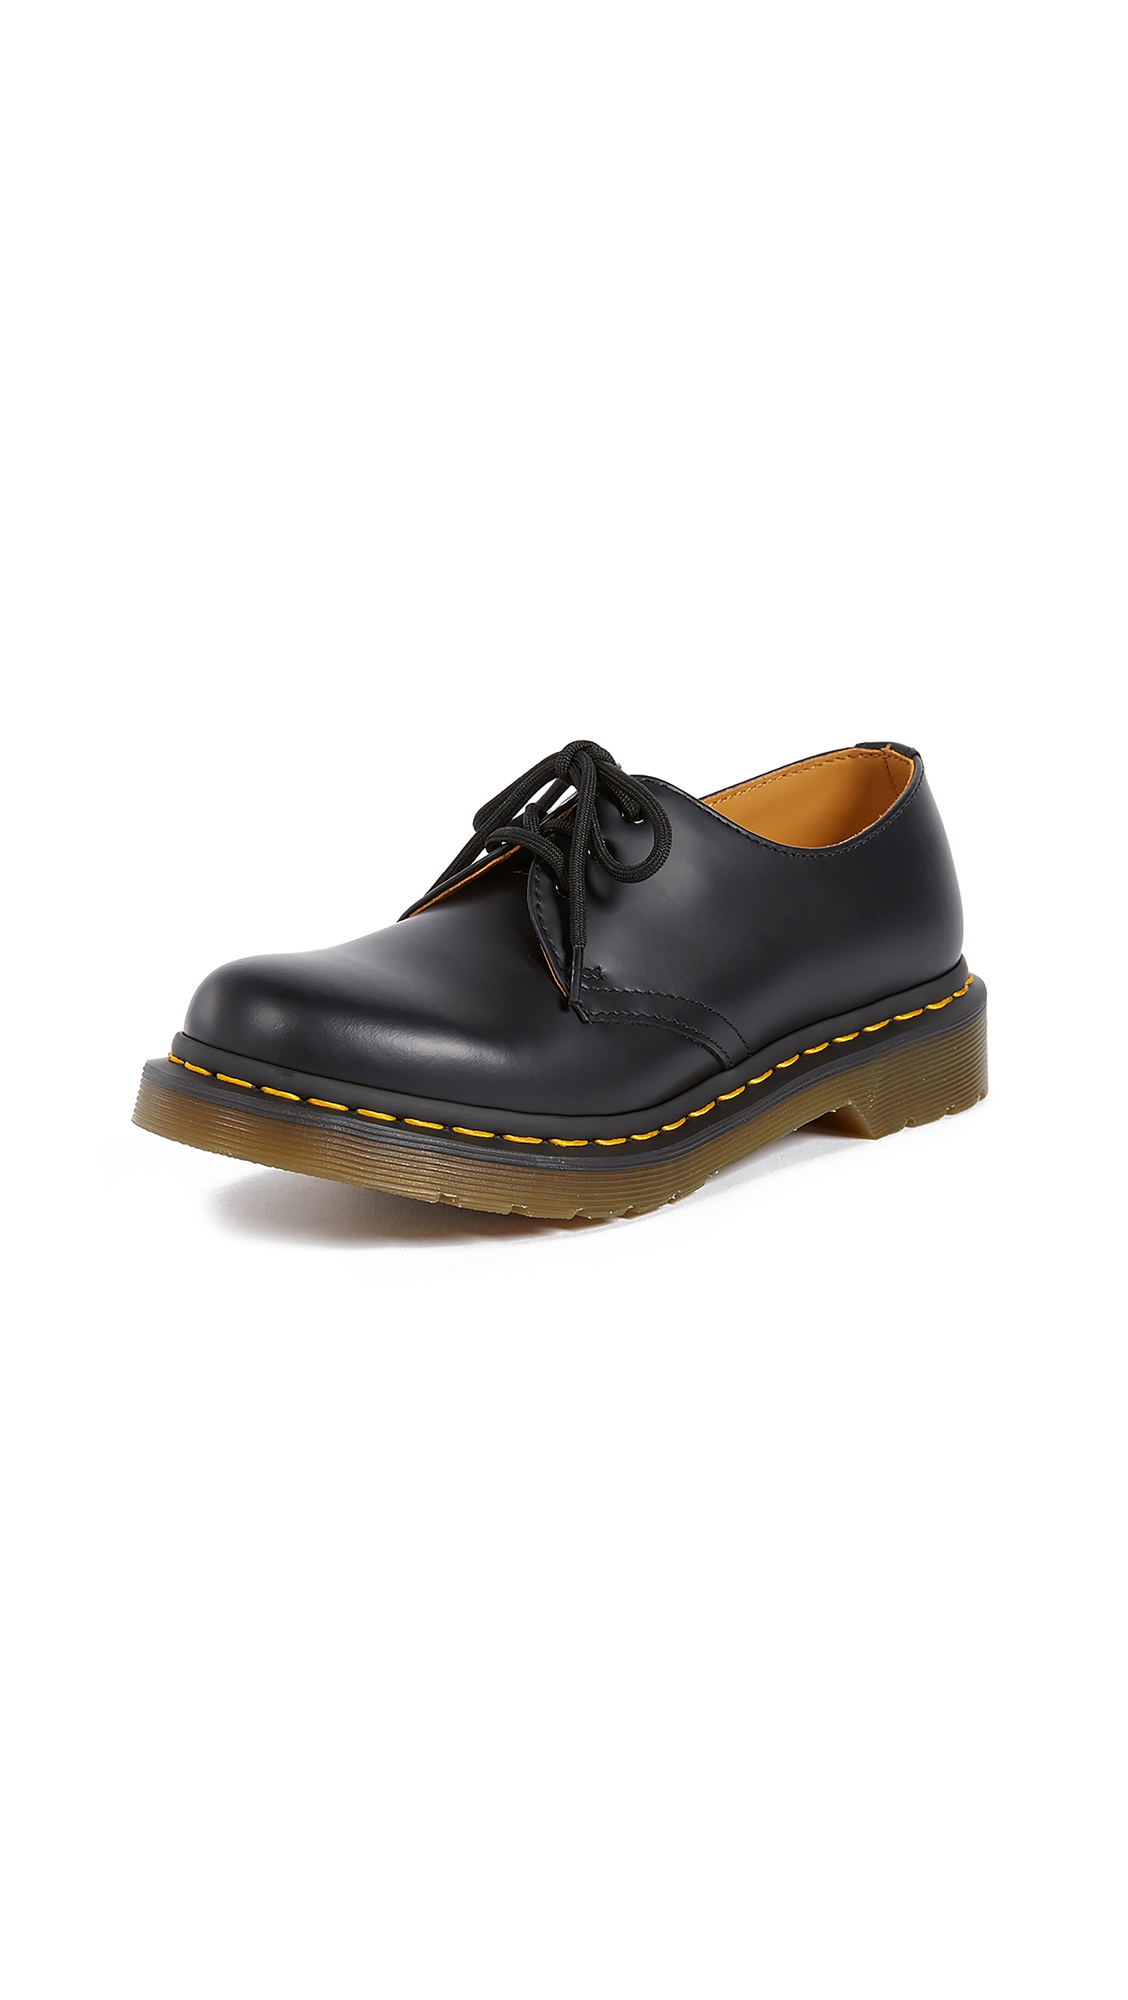 Buy Dr. Martens 1461 3 Eye Oxfords online, shop Dr. Martens